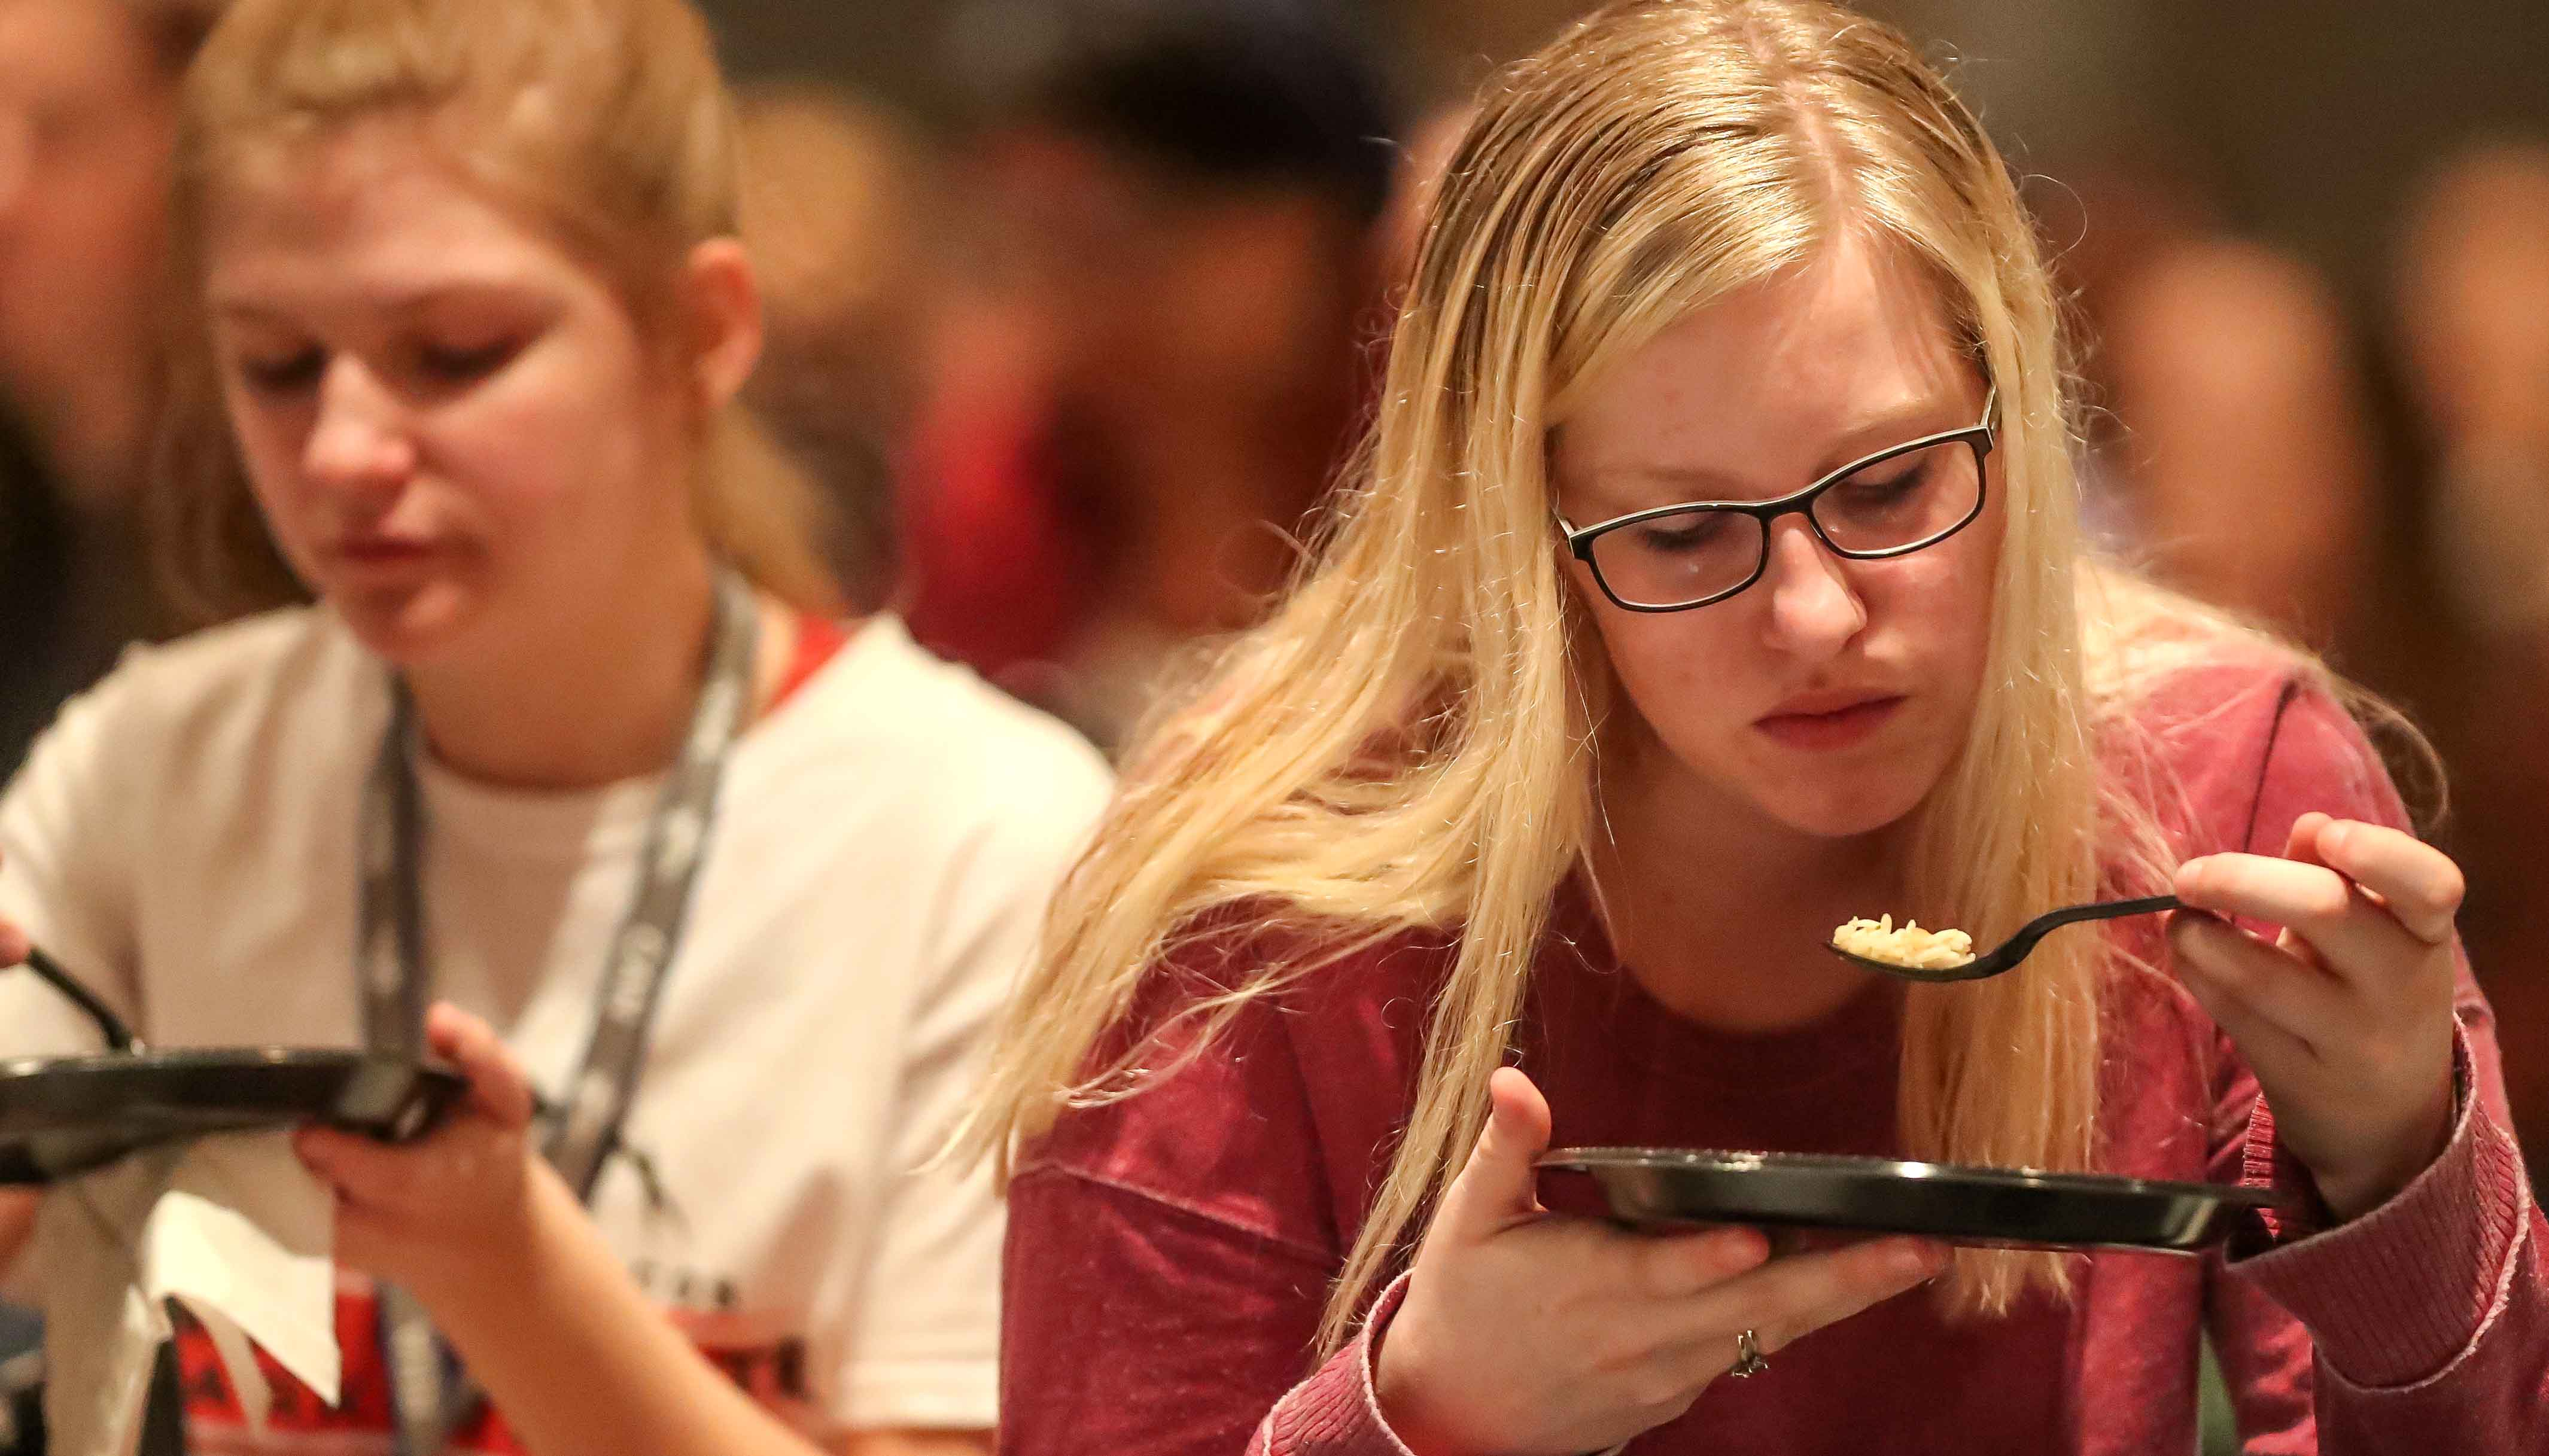 UNK students Kenna Storrs of Kearney, left, and Maddie Good of Gothenburg participate in the Hunger Banquet Tuesday. The event raised awareness about hunger and food insecurity in the United States and Kearney community. (Photo by Corbey R. Dorsey/UNK Communications)